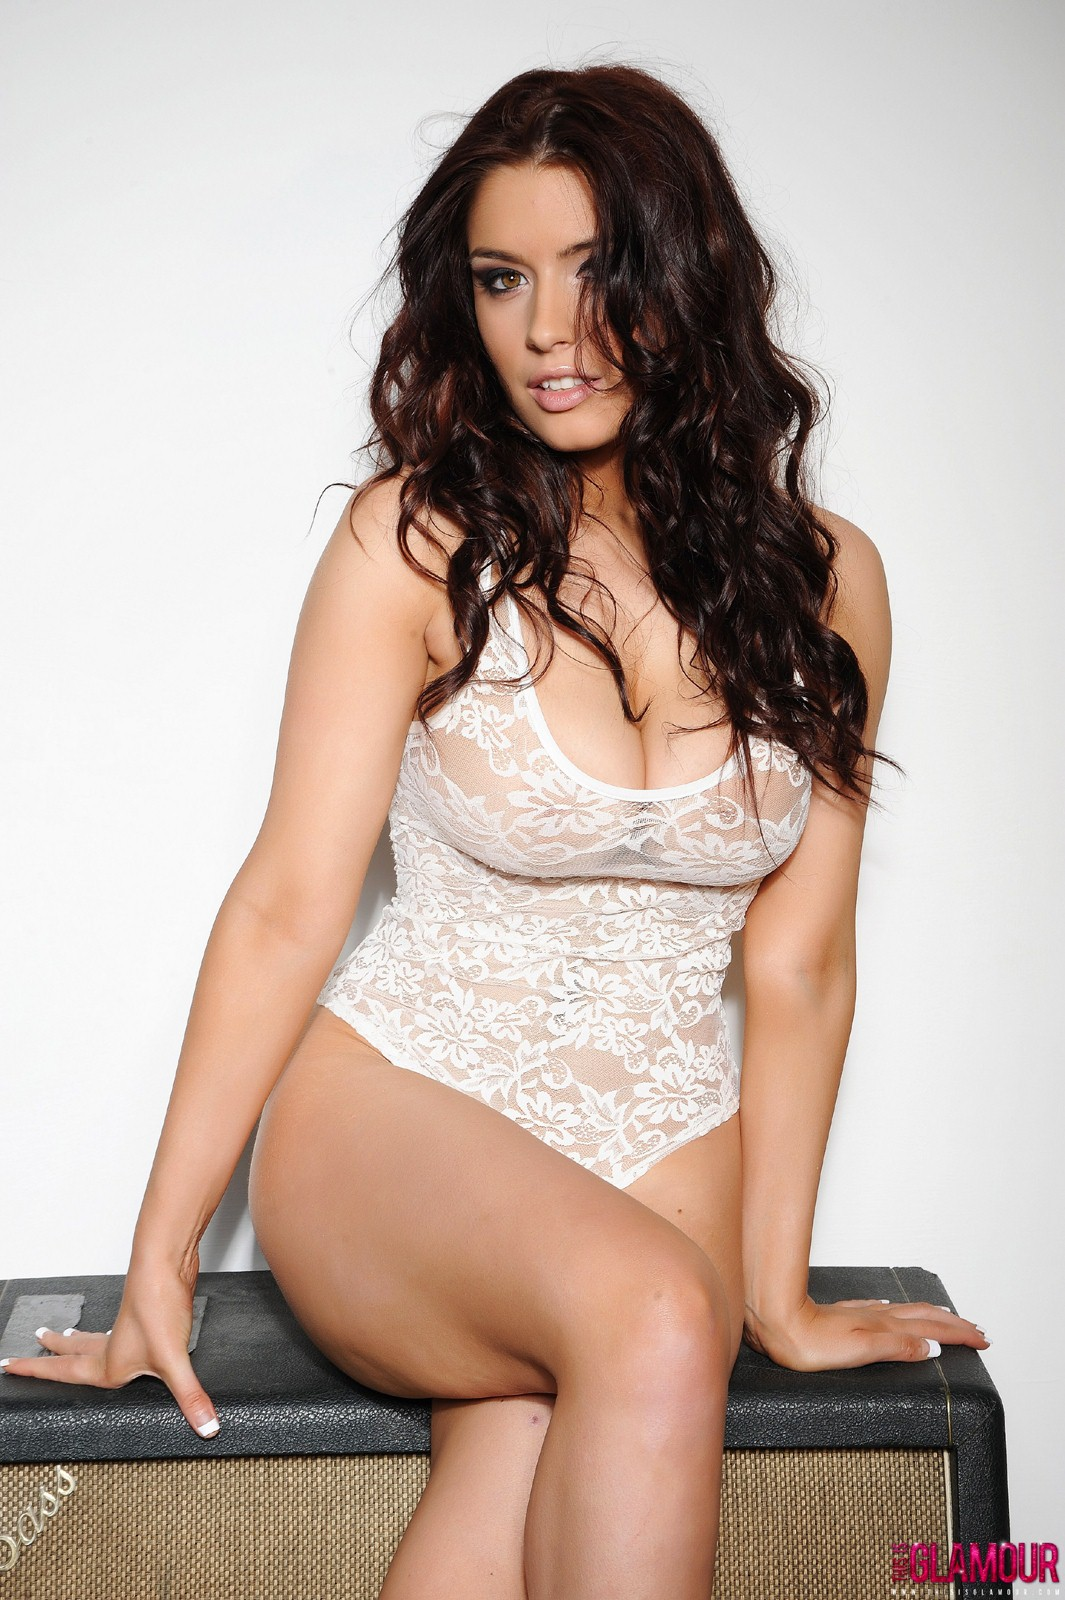 Kelly Andrews Topless In Lacy Lingerie